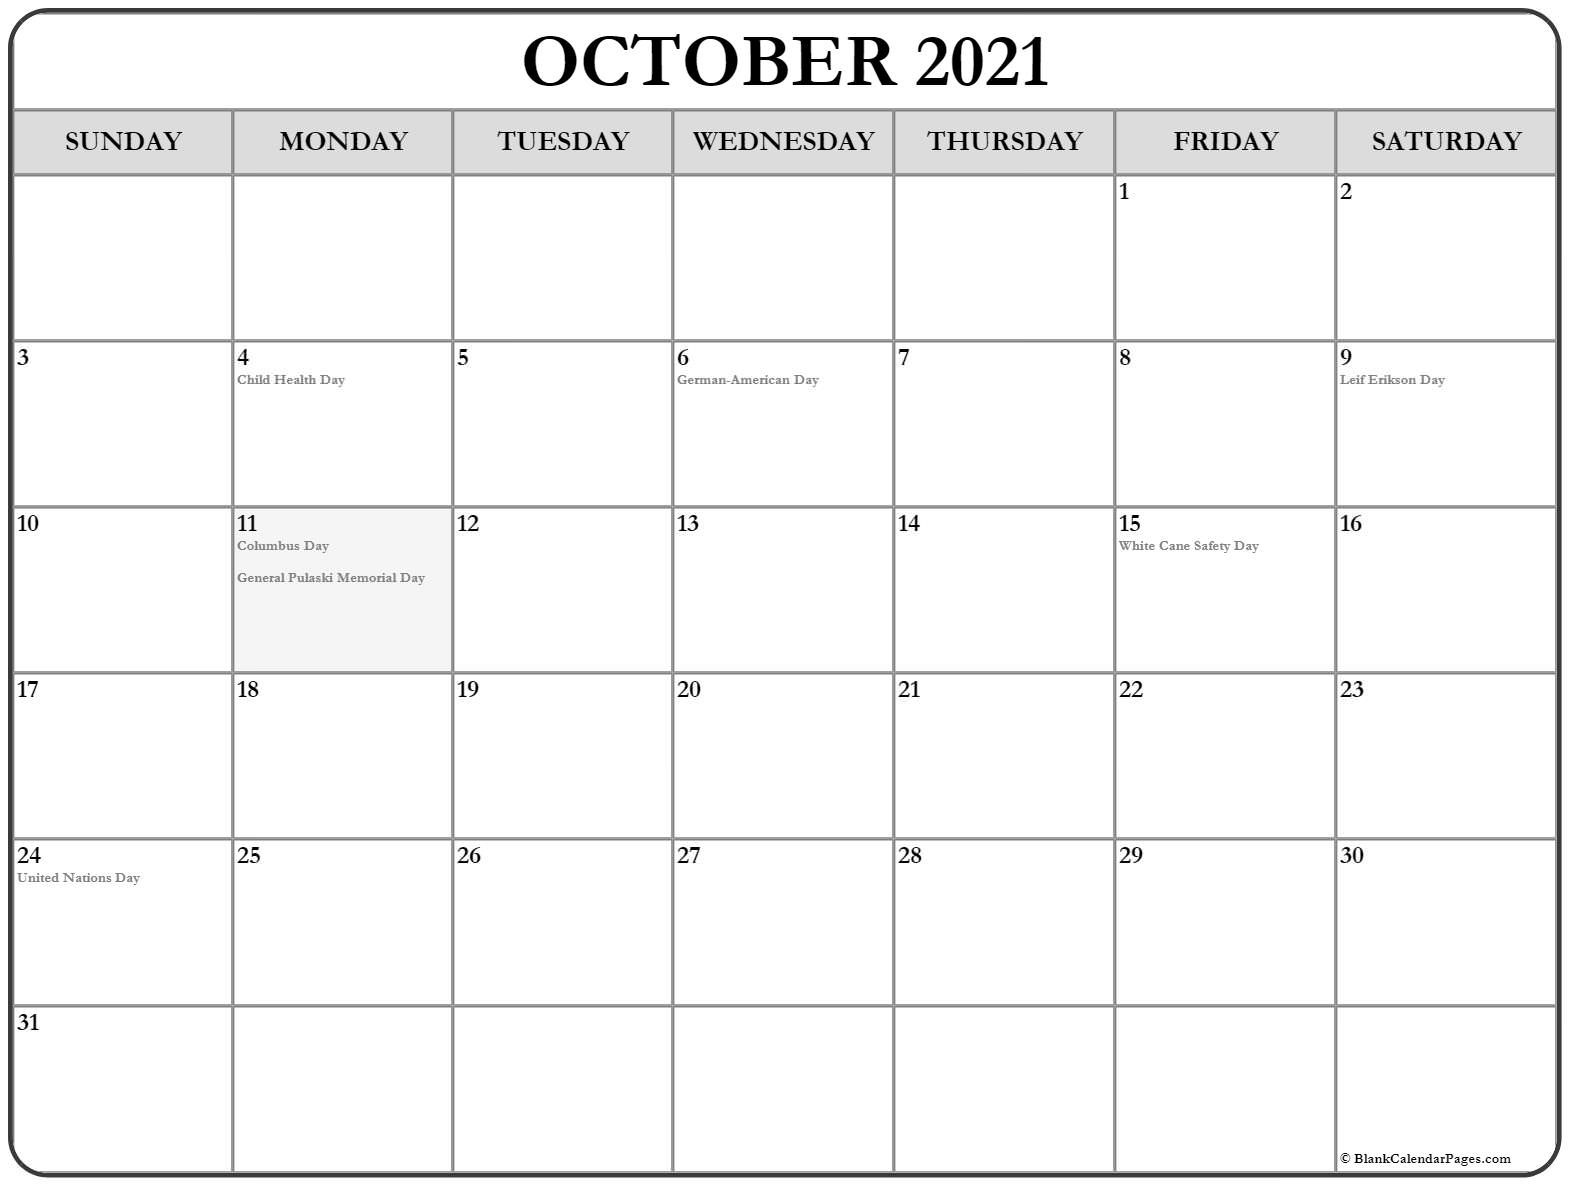 October 2019 USA holiday calendar. Incluides US federal holidays and observations